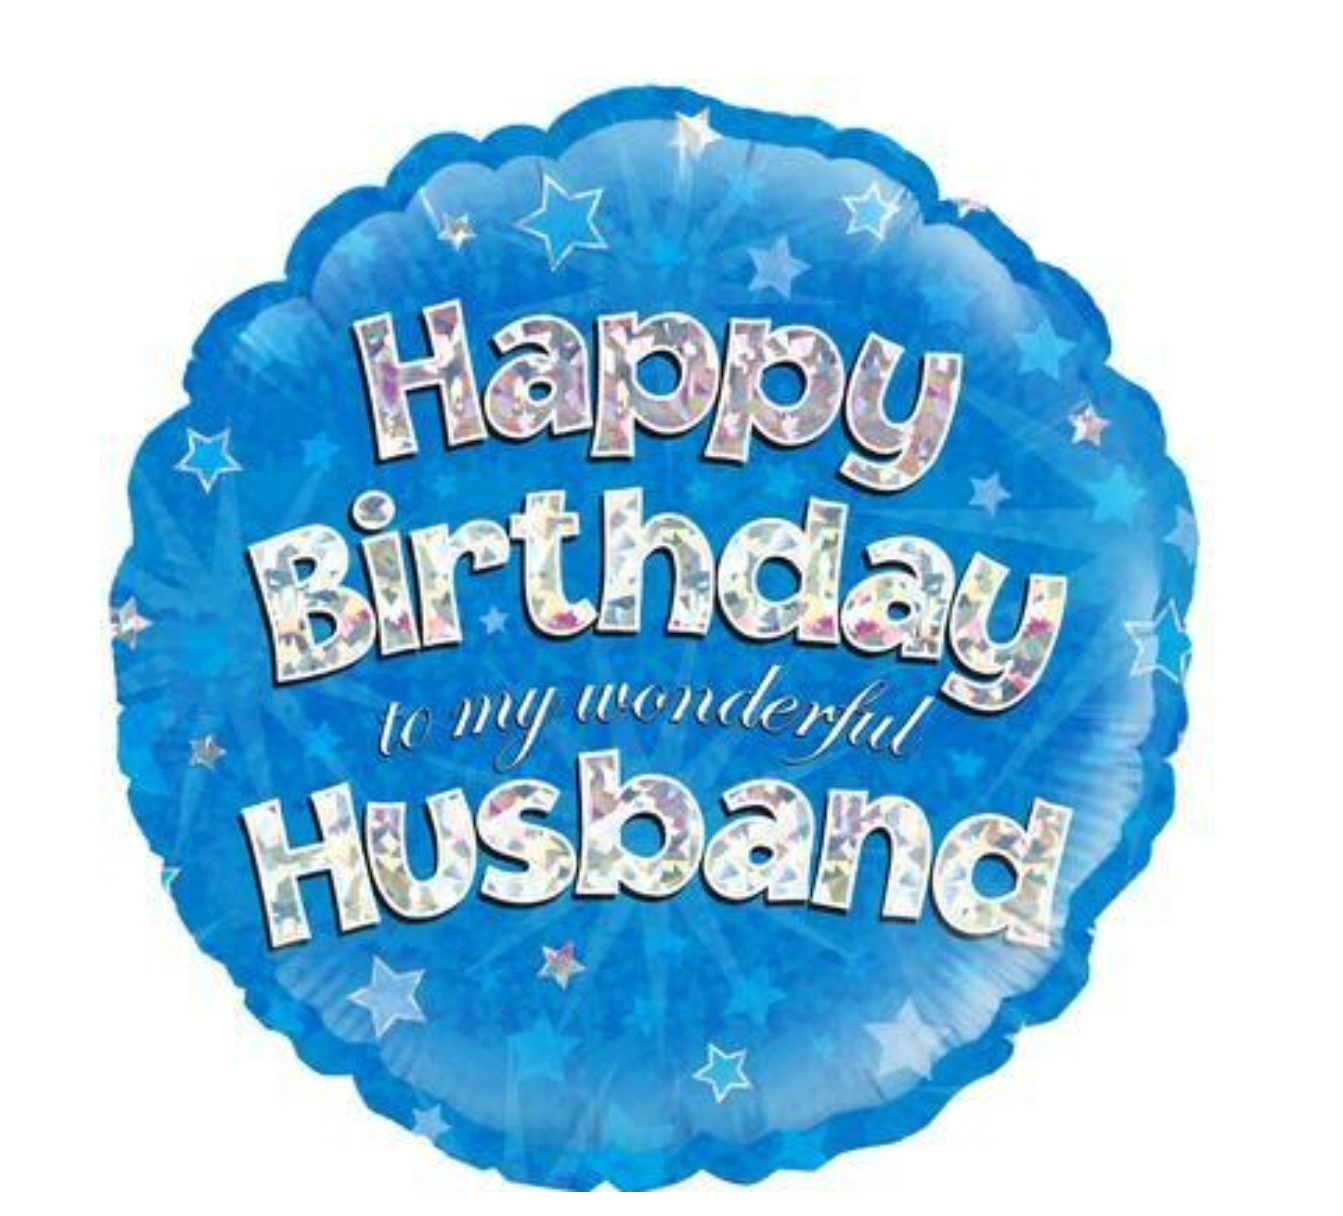 Happy Birthday Husband Blue Holographic Balloon (18 Inches)